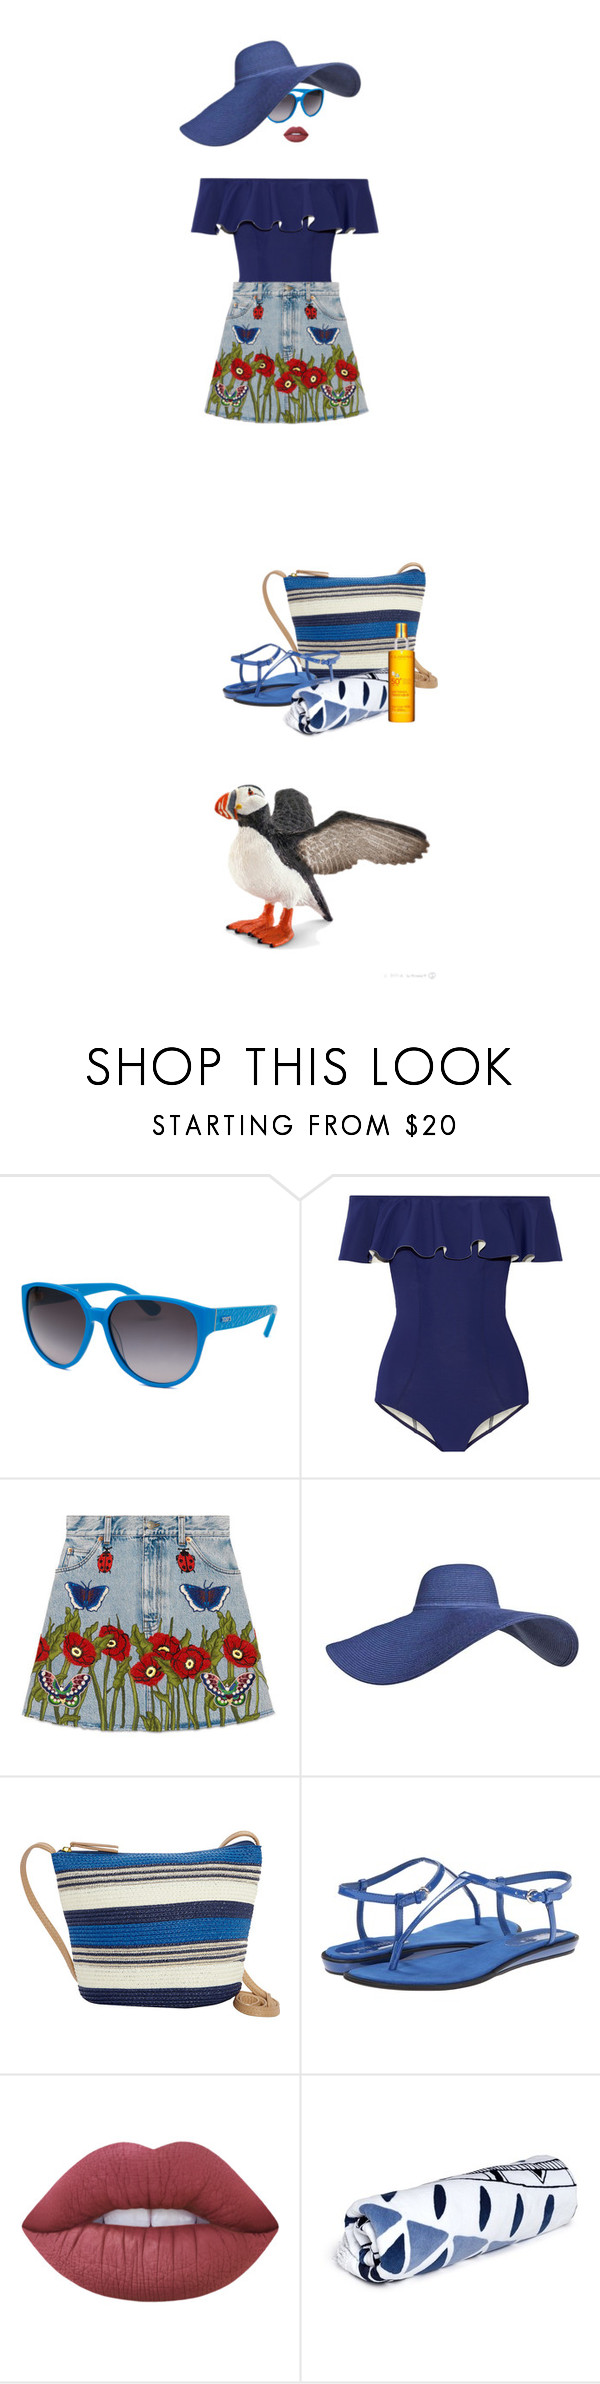 """She said she was off to visit with the puffins for the day"" by fsommerv ❤ liked on Polyvore featuring Tod's, Lisa Marie Fernandez, Gucci, Sun N' Sand, Nine West, Lime Crime, The Beach People and Clarins"